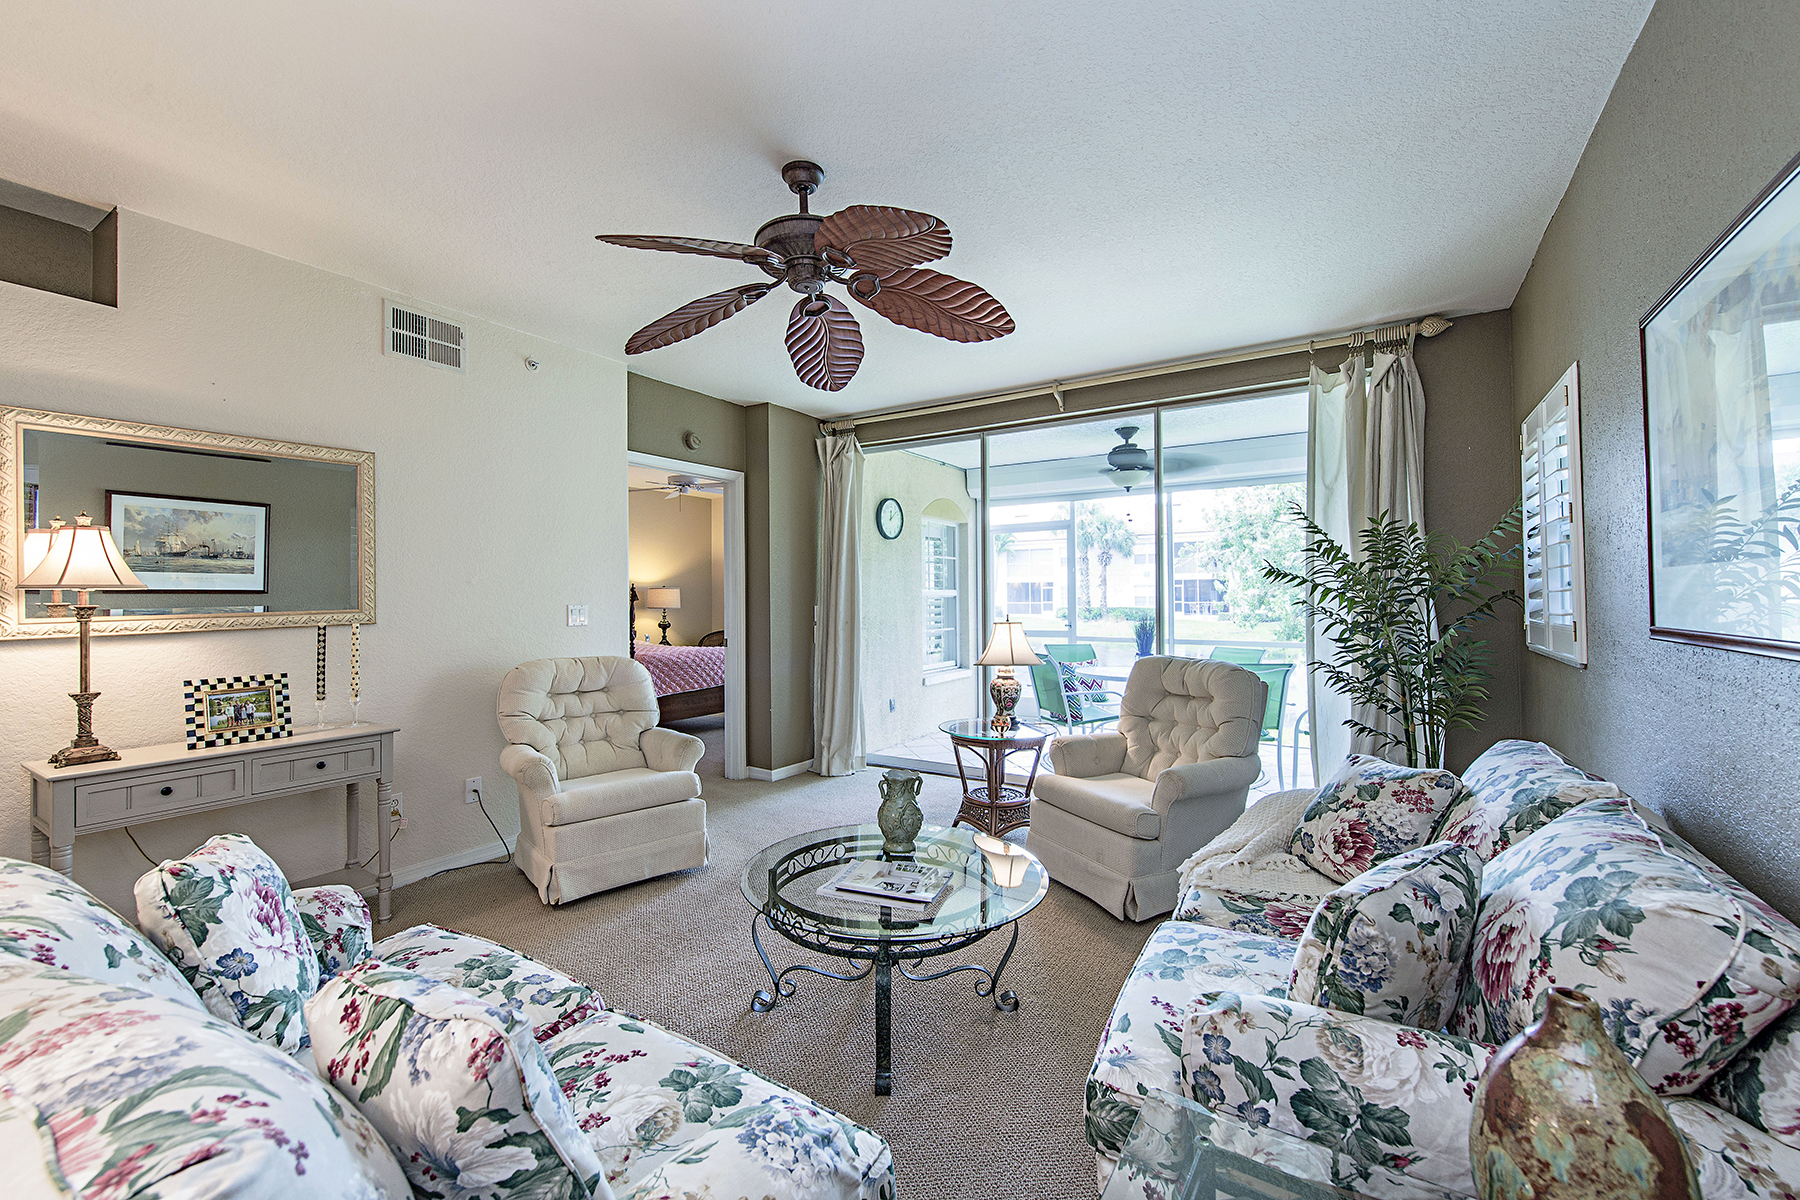 Condominium for Sale at CALUSA BAY NORTH 6923 Satinleaf Rd N 104 Naples, Florida, 34109 United States